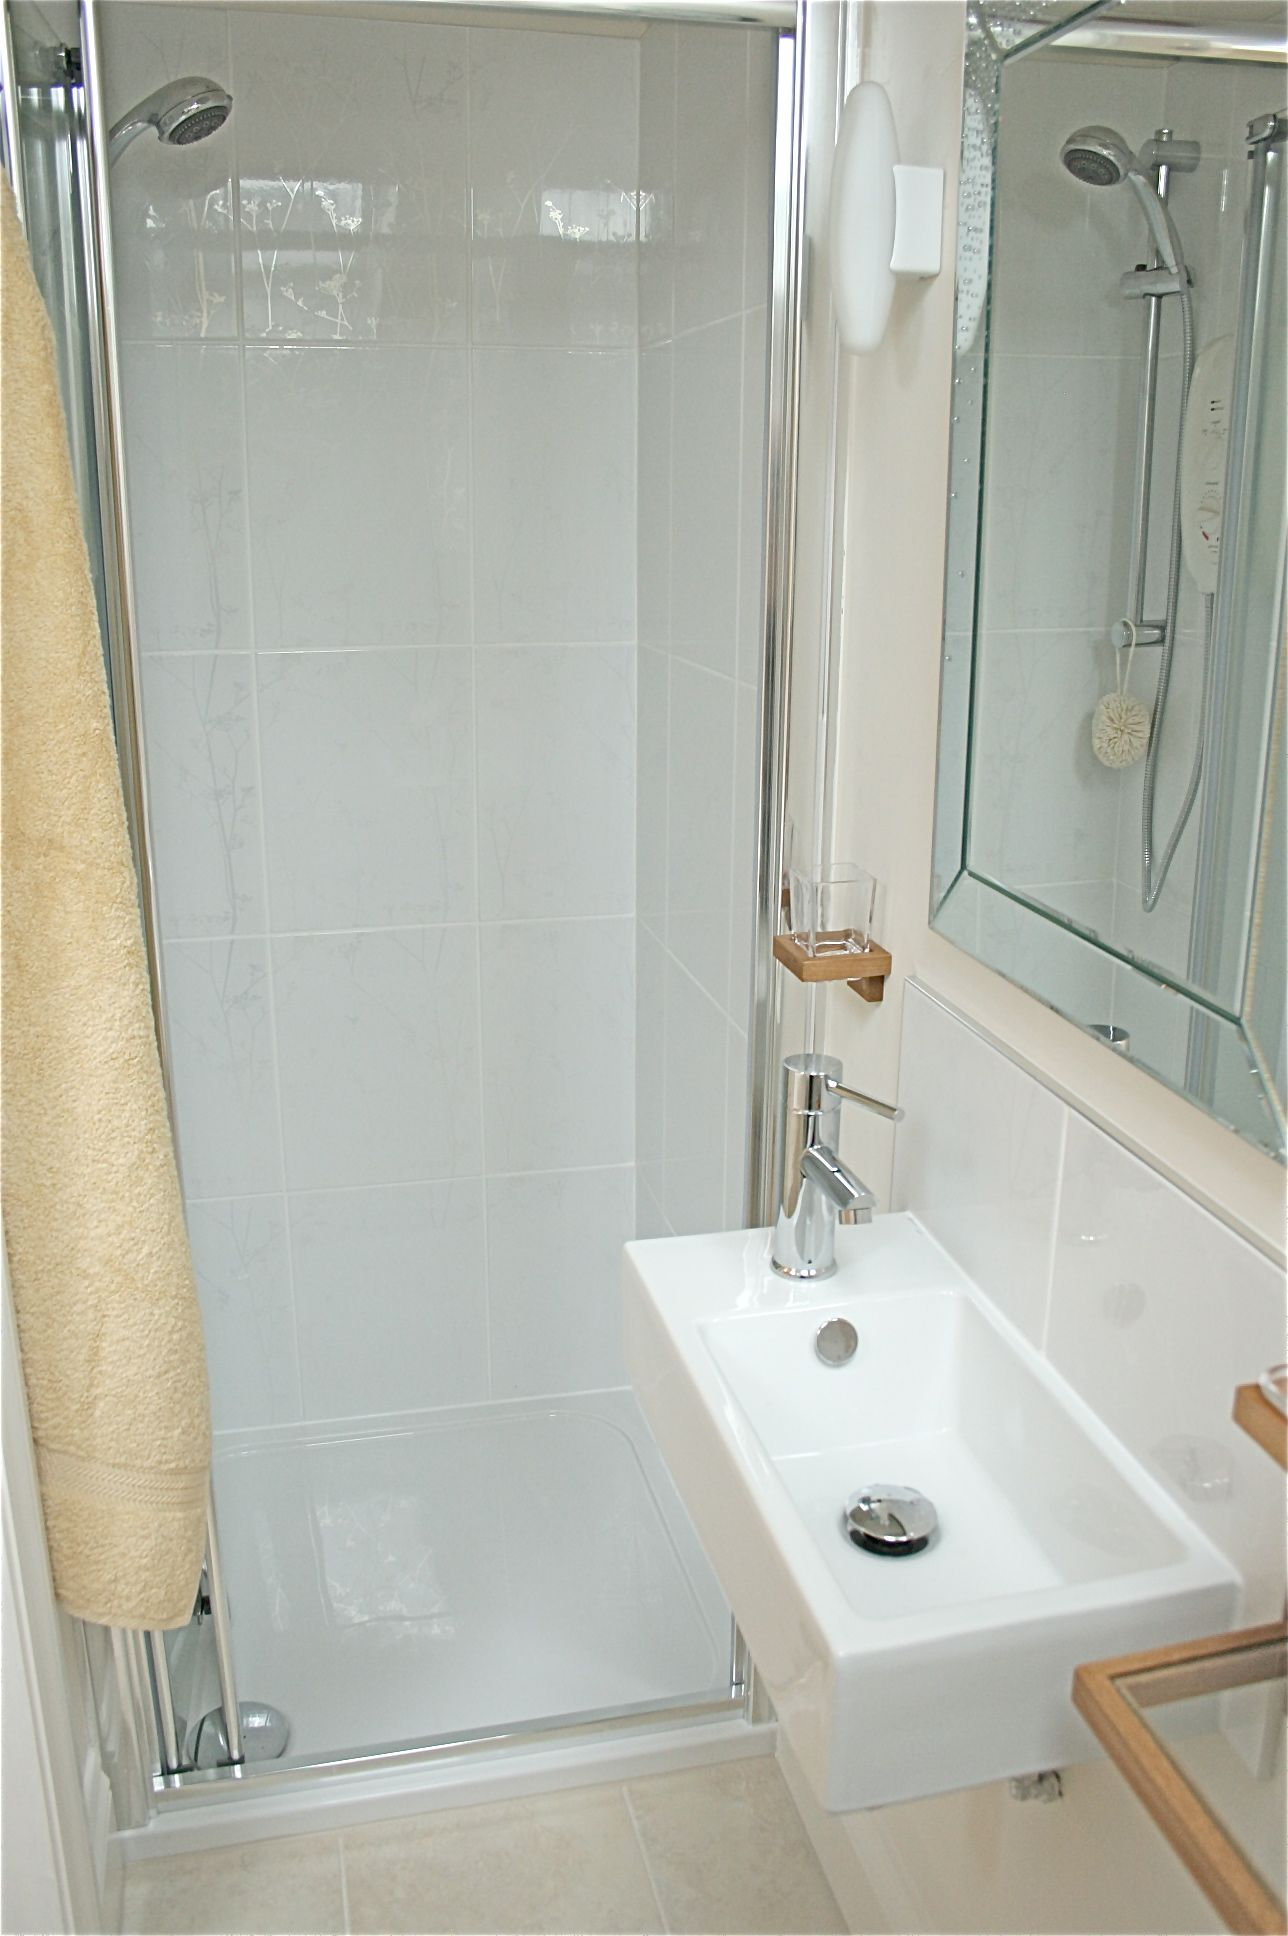 Simple bathrooms with shower - Very Small Bathroom Arragement Idea With Narrow Shower And White Square Sink Accessories Real Simple Bathroom